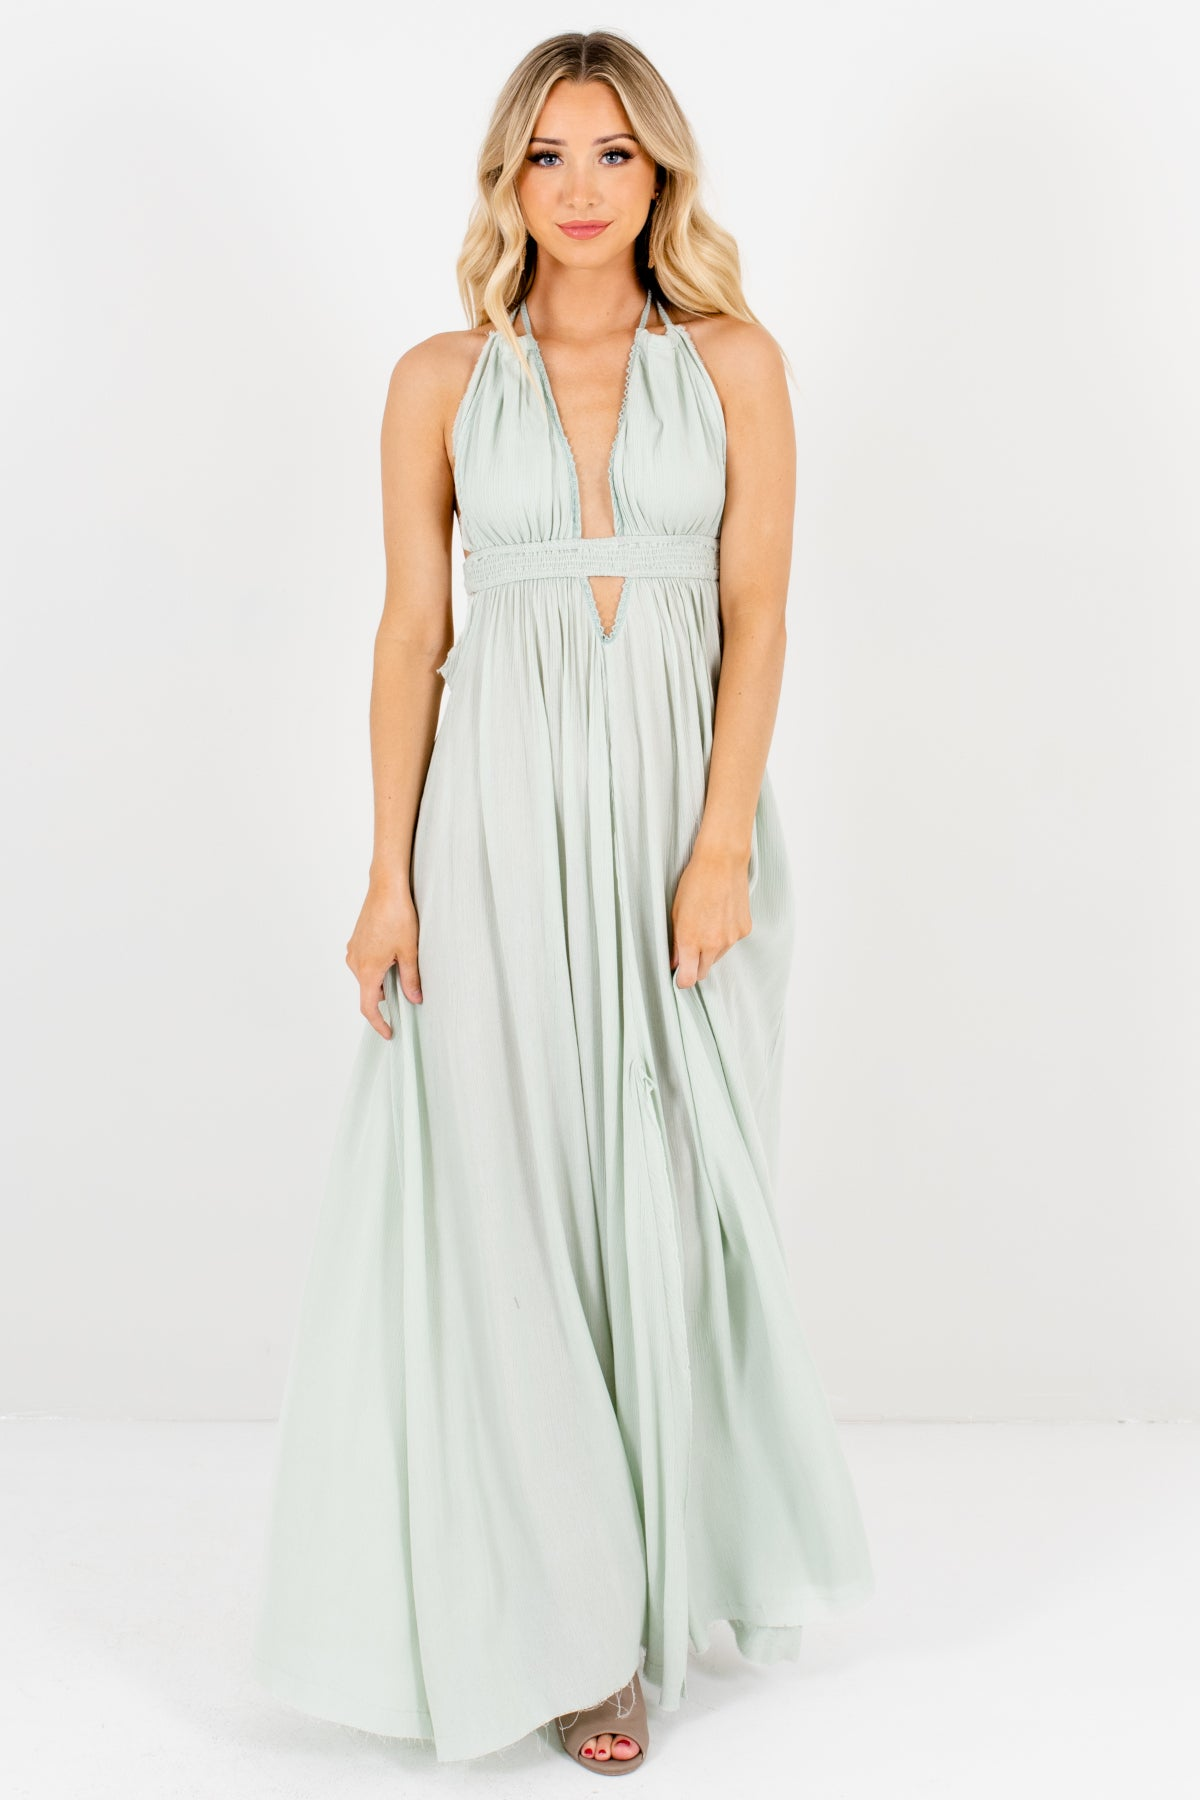 Mint Green Long Flowy Maxi Dresses with Open Back and Tassel Ties